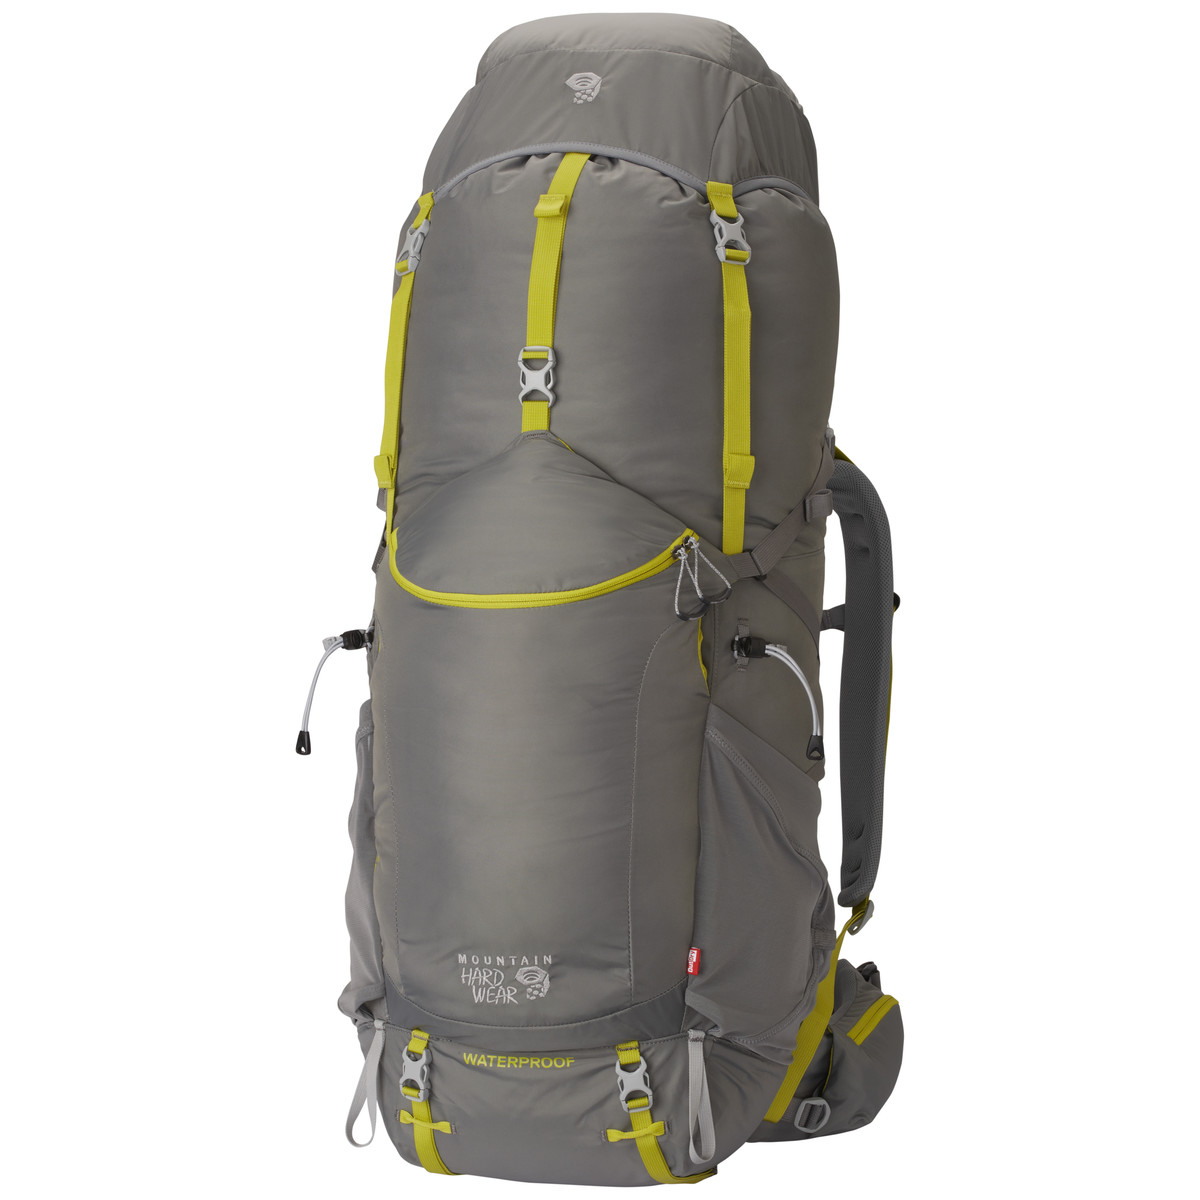 Mountain Hardwear Ozonic 65 OutDry